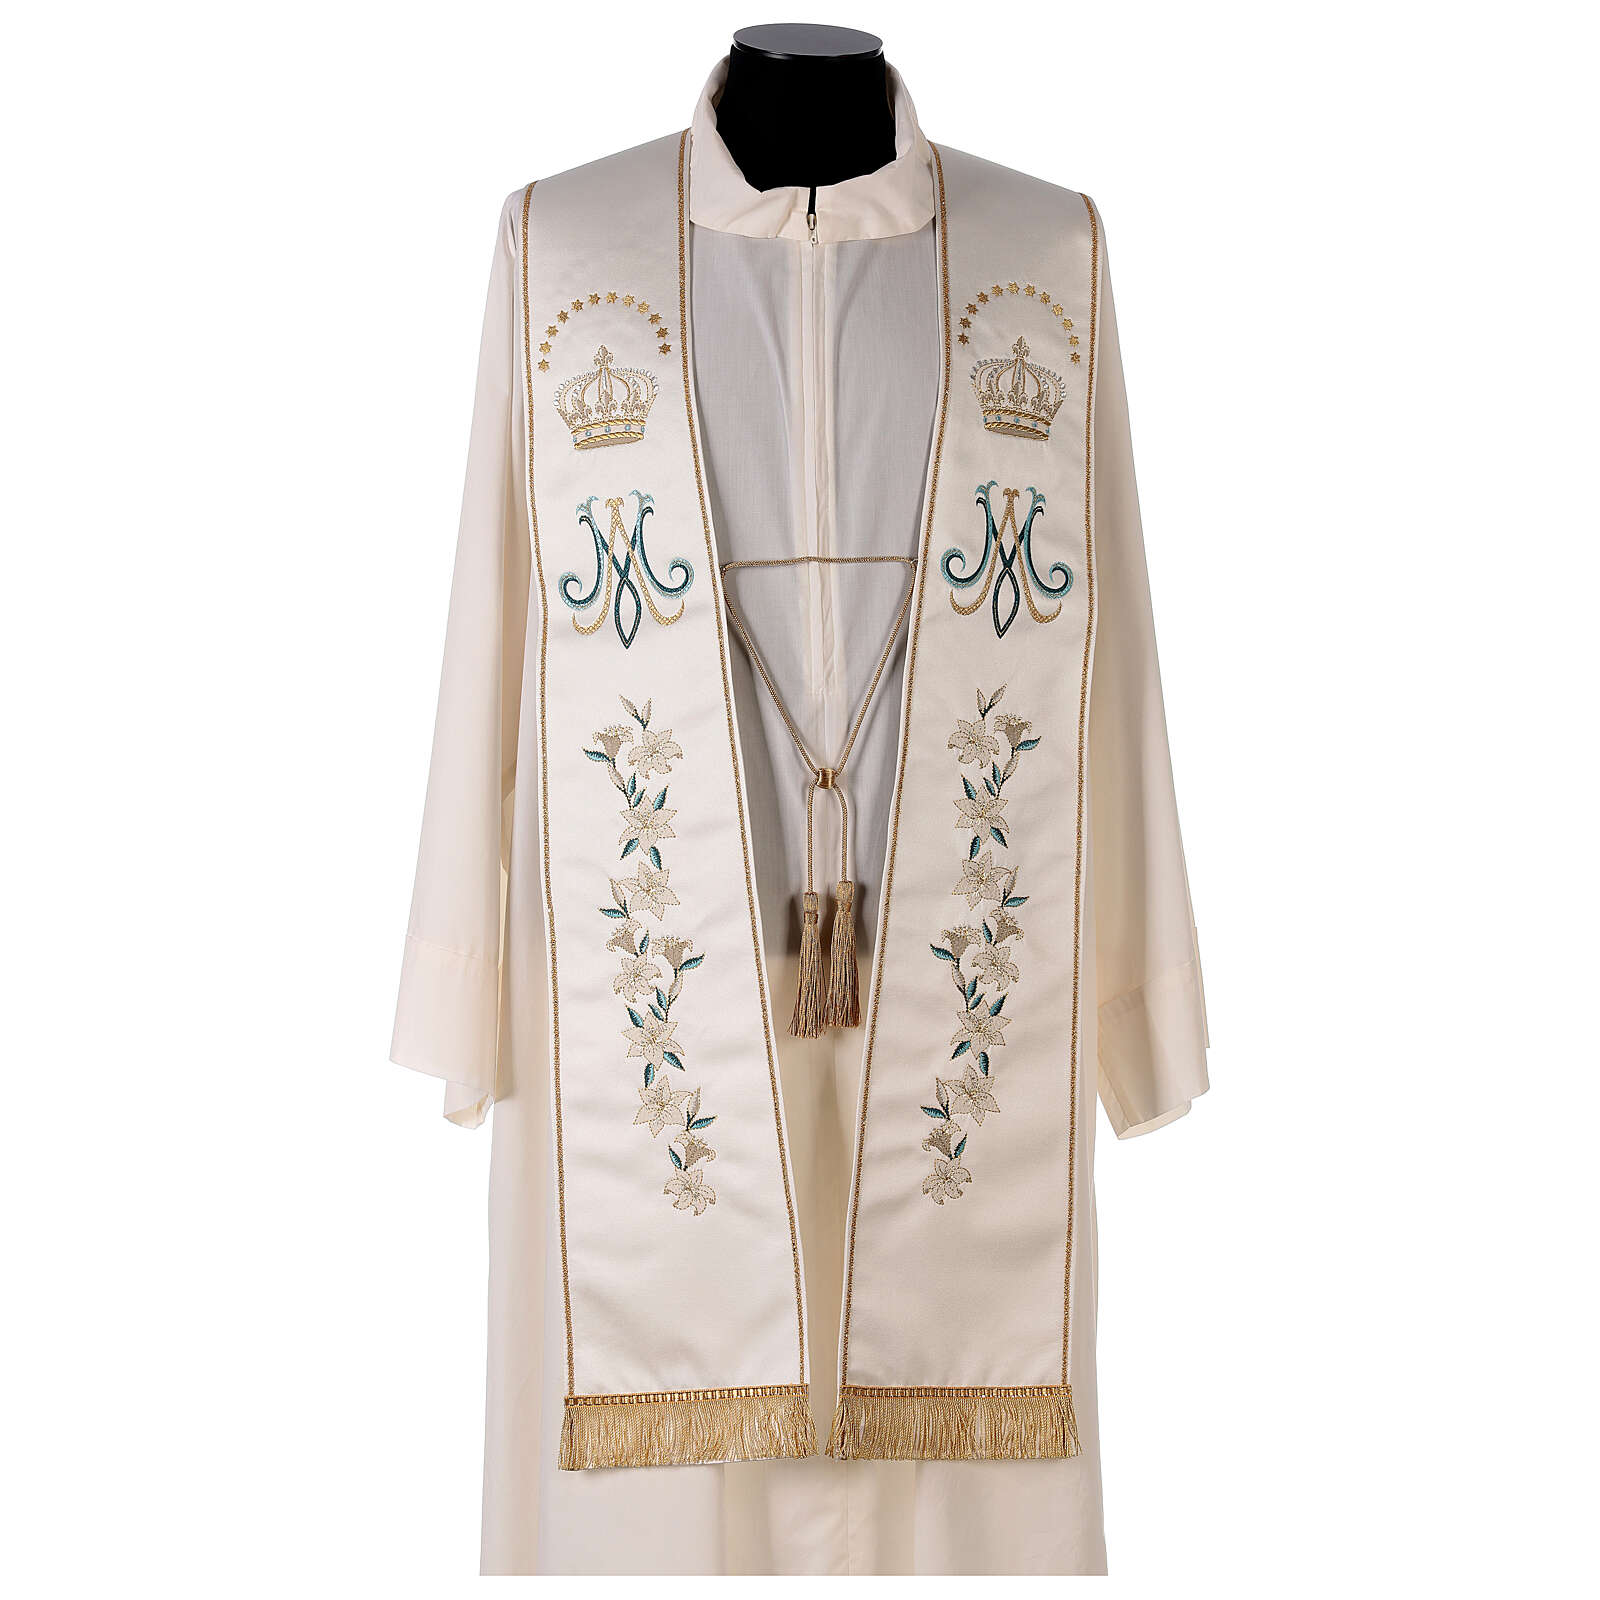 Marian stole satin embroidered 100% polyester 4